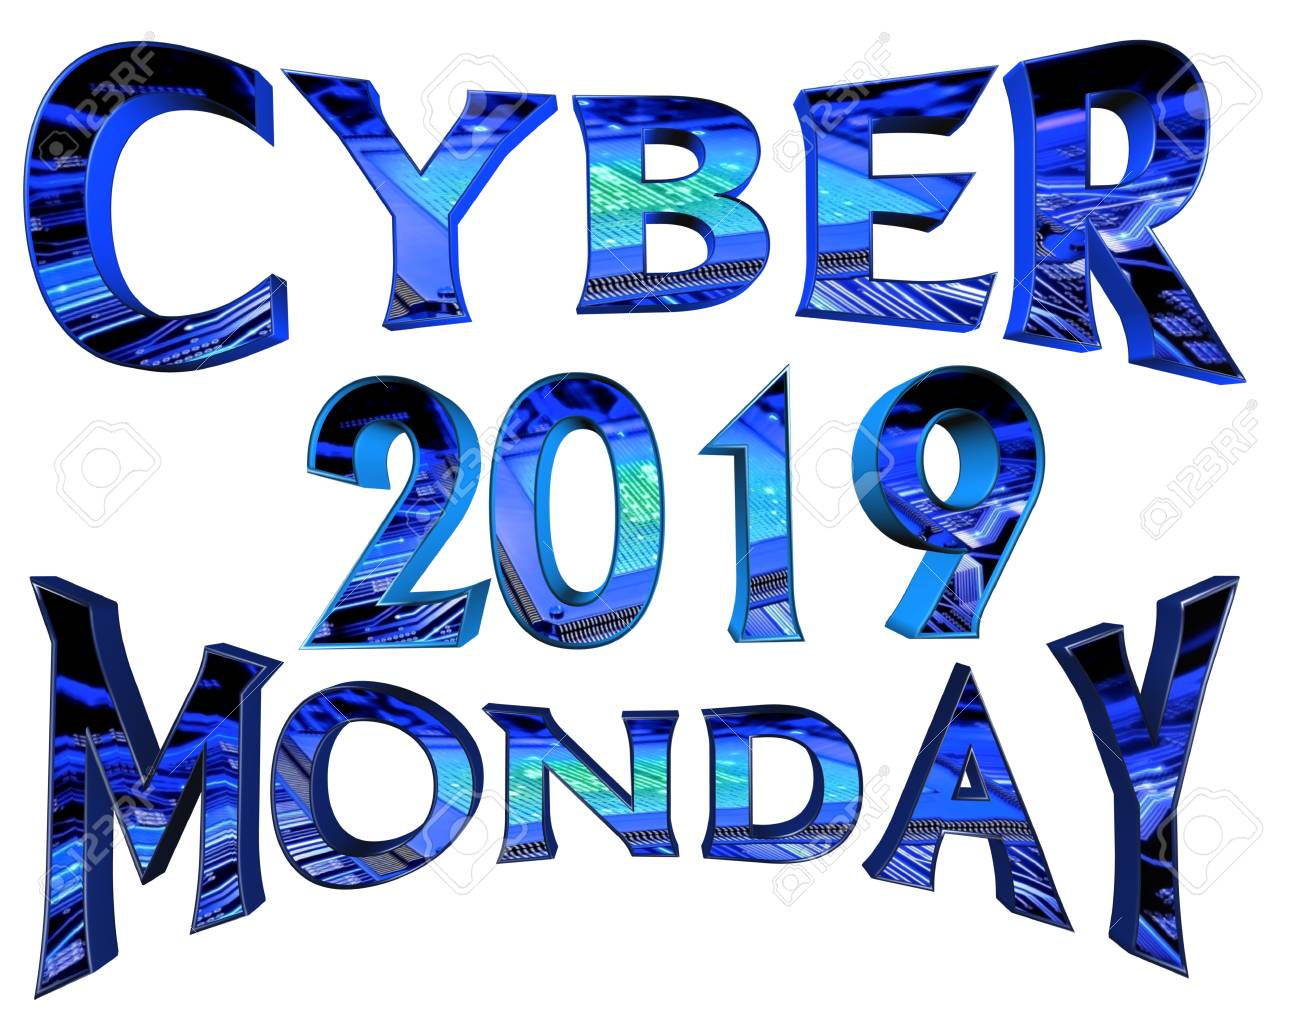 Many stores and brands offer great discounts on Cyber Monday 2019